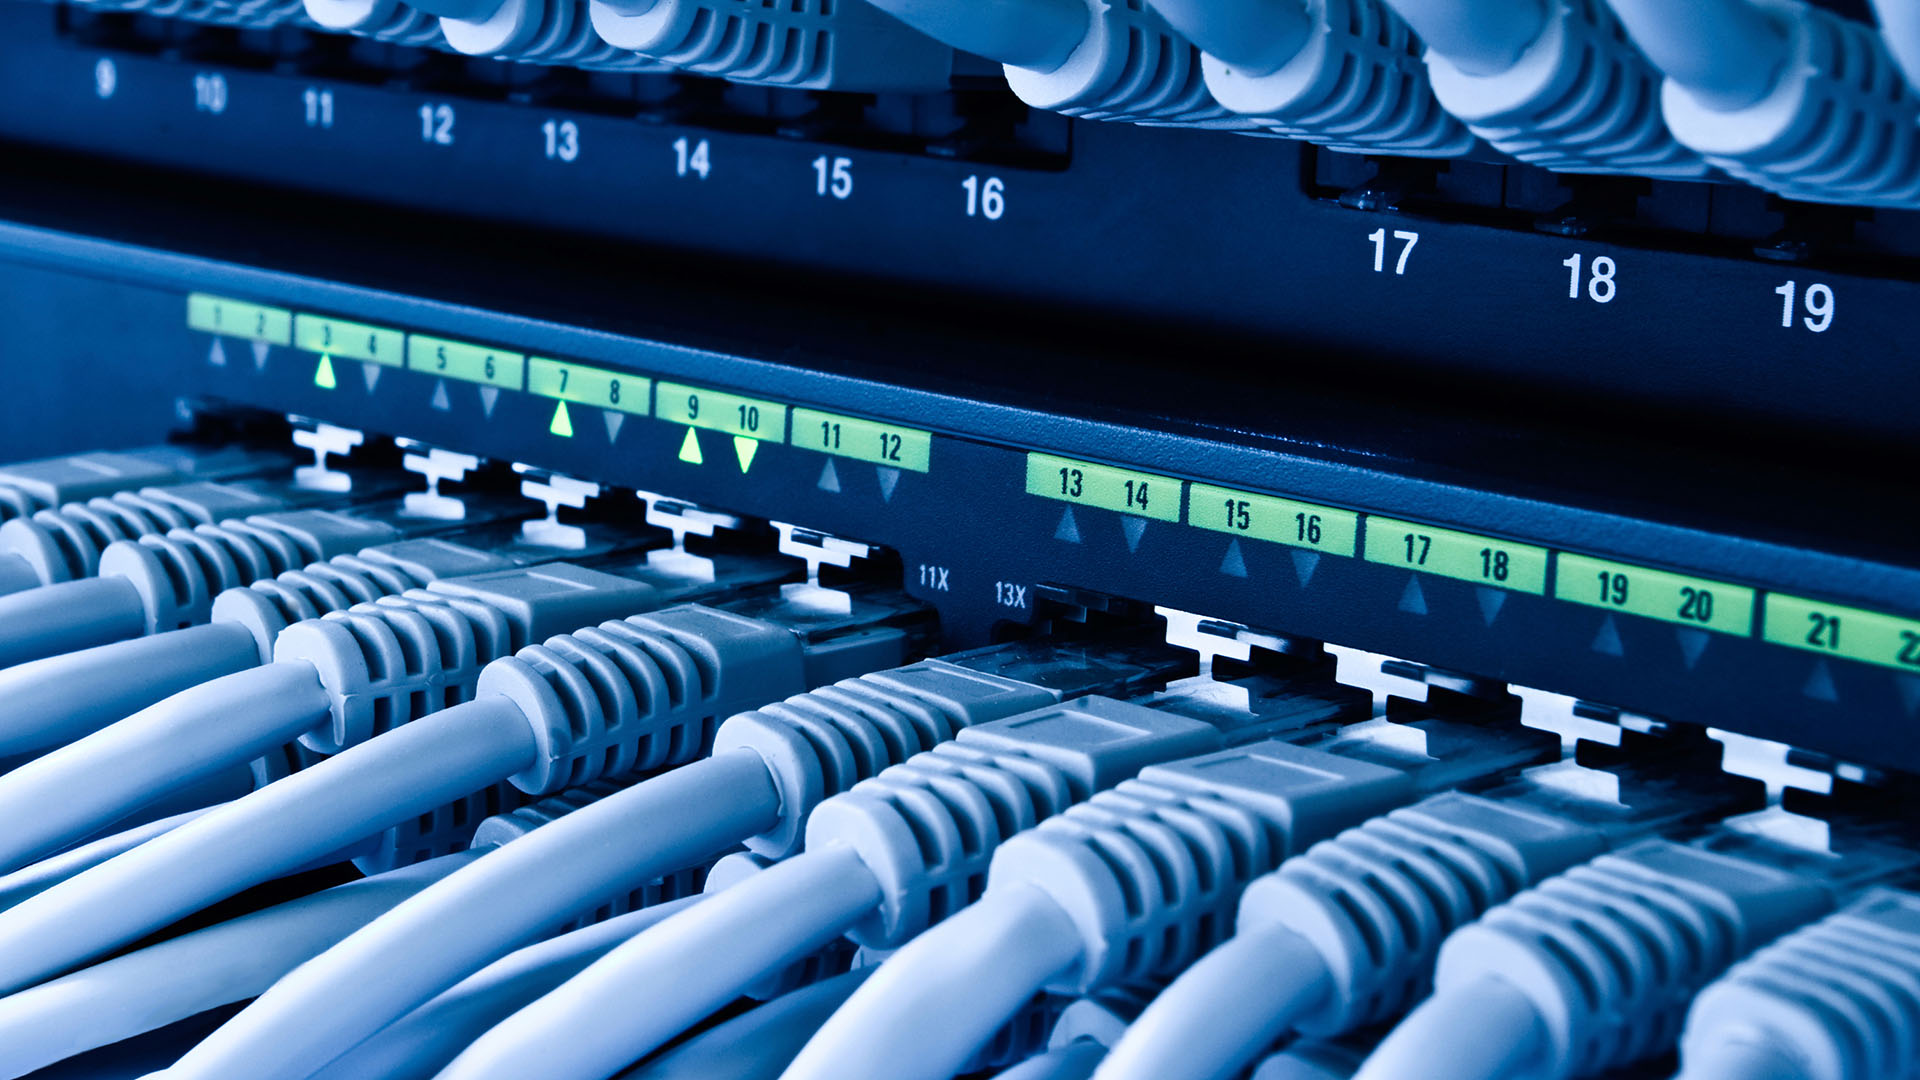 Rockledge Florida Trusted Voice & Data Network Cabling Provider